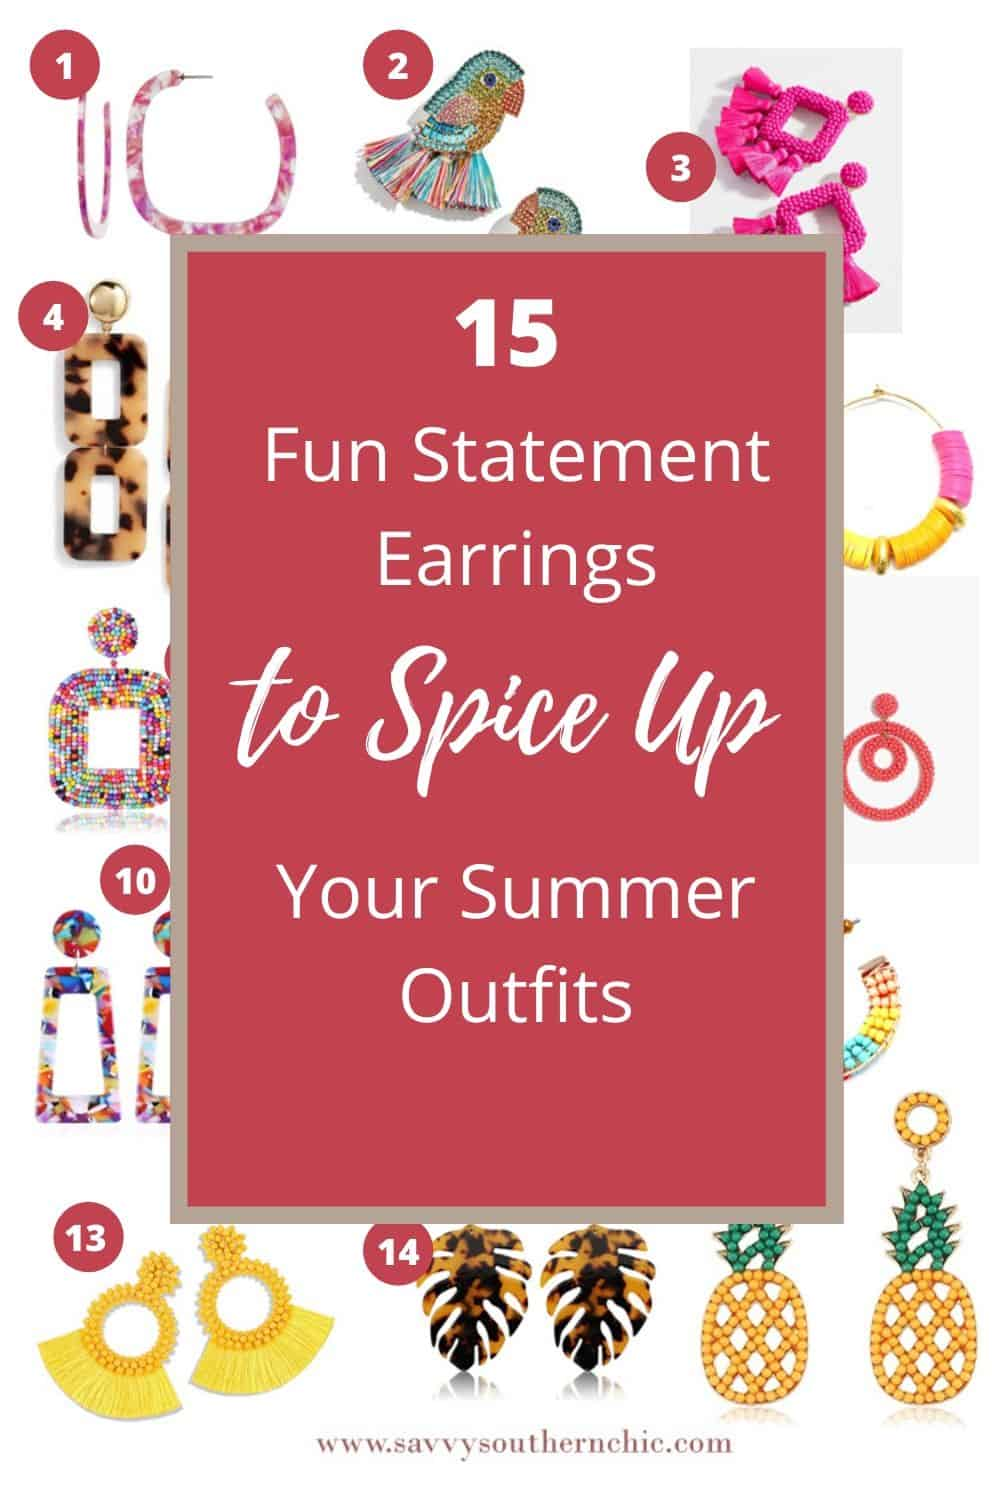 15 Fun Statement Earrings to Spice Up Your Summer Outfits